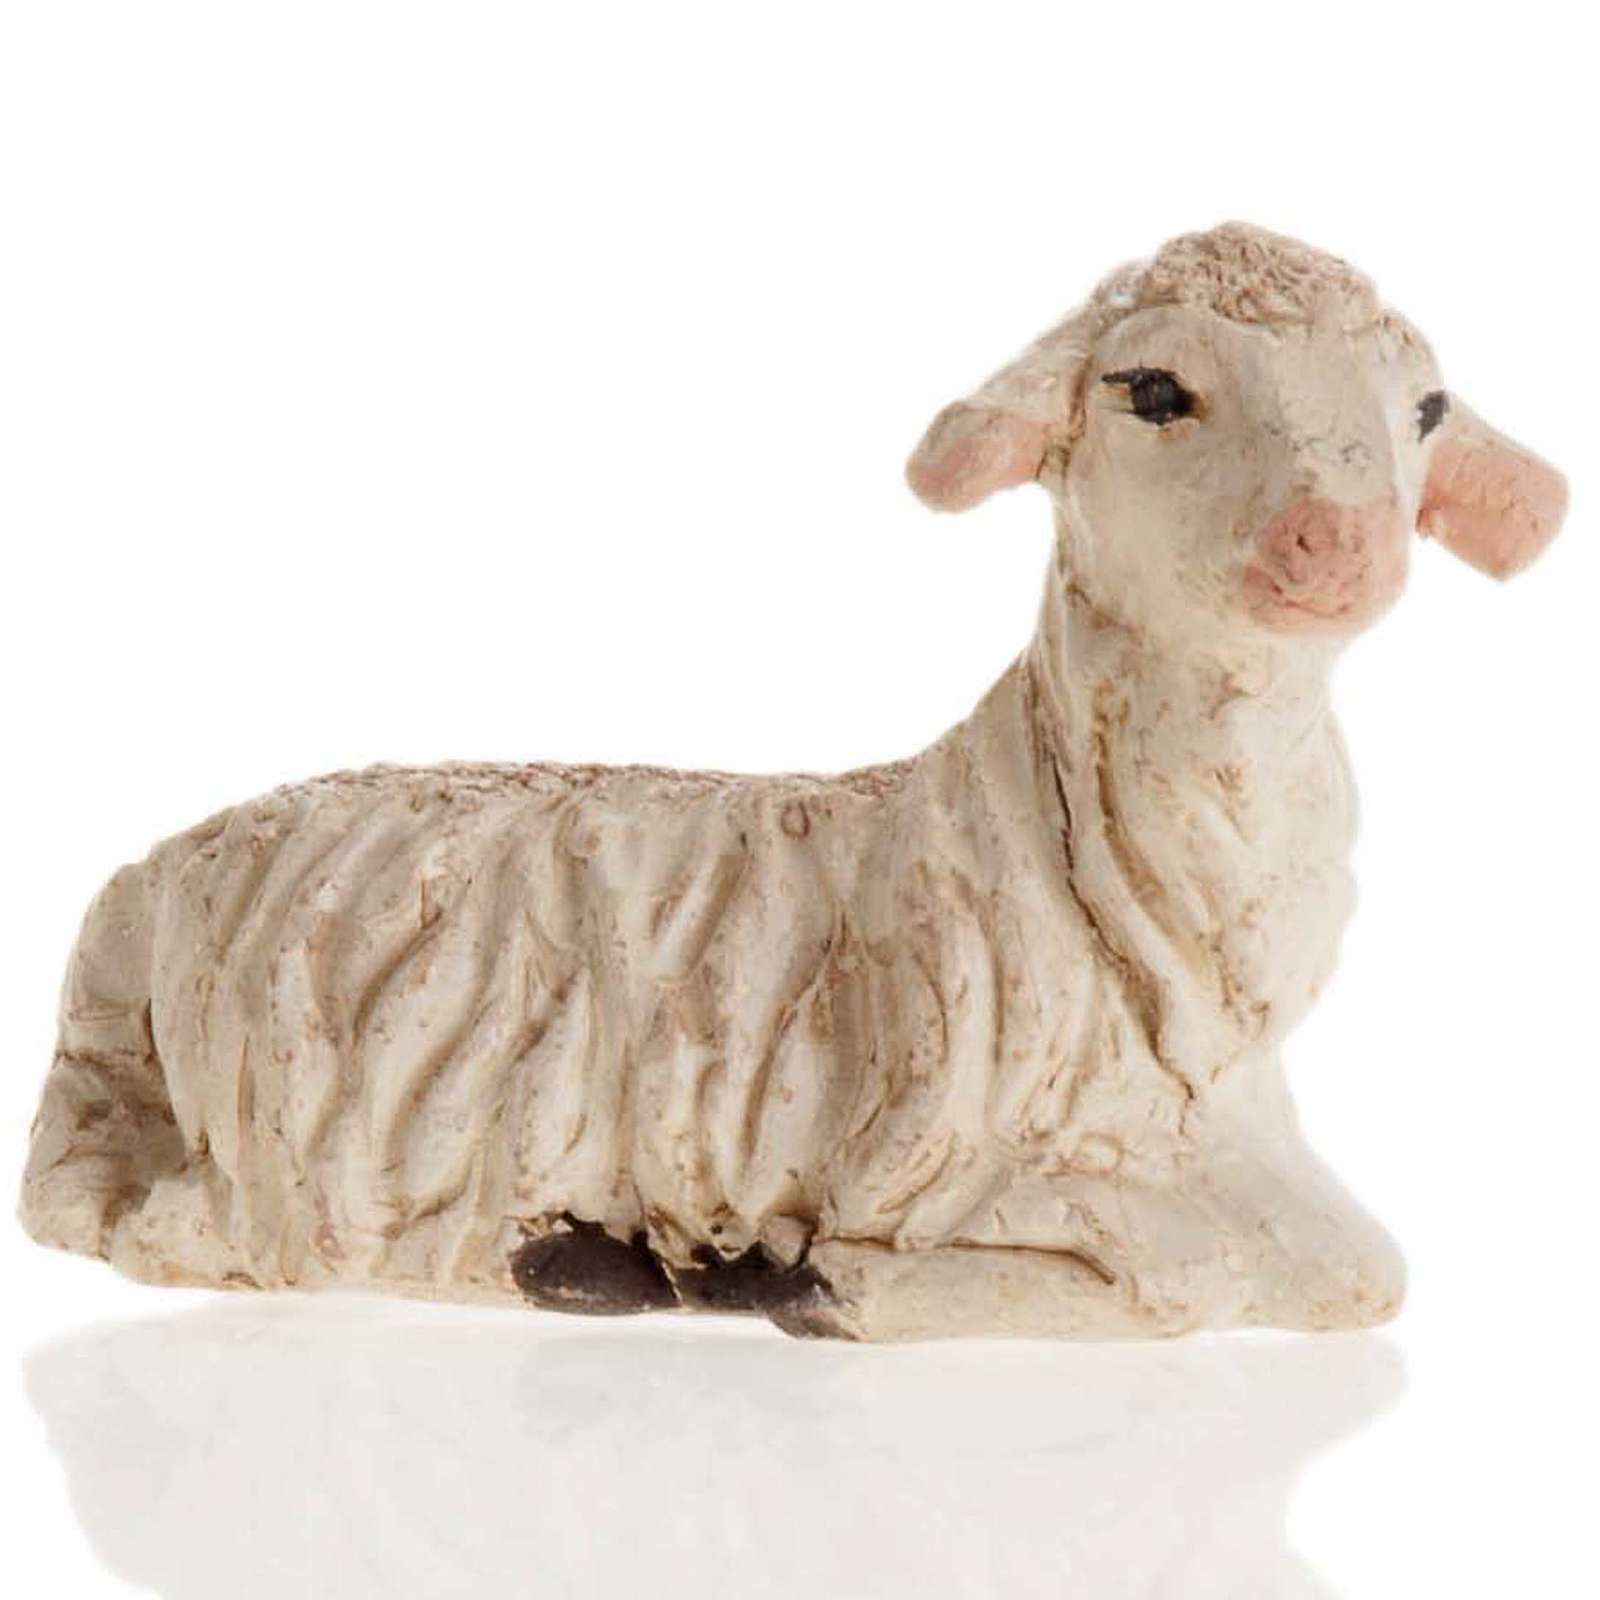 Neapolitan Nativity figurine, Laying sheep 12cm 4